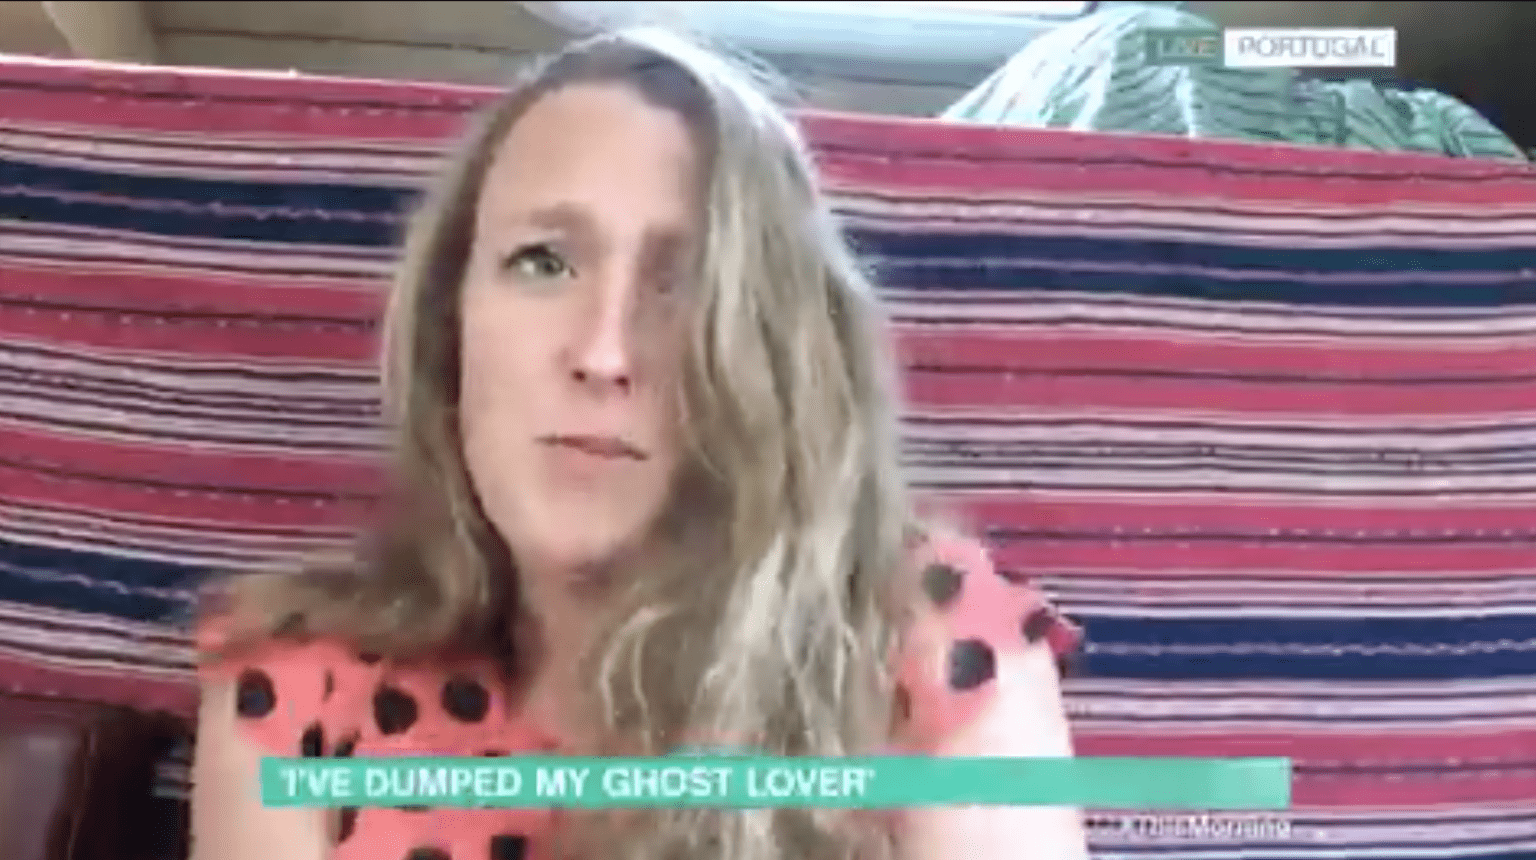 Wedding called off after woman says her ghost fiancé cheated on her.  No, really.